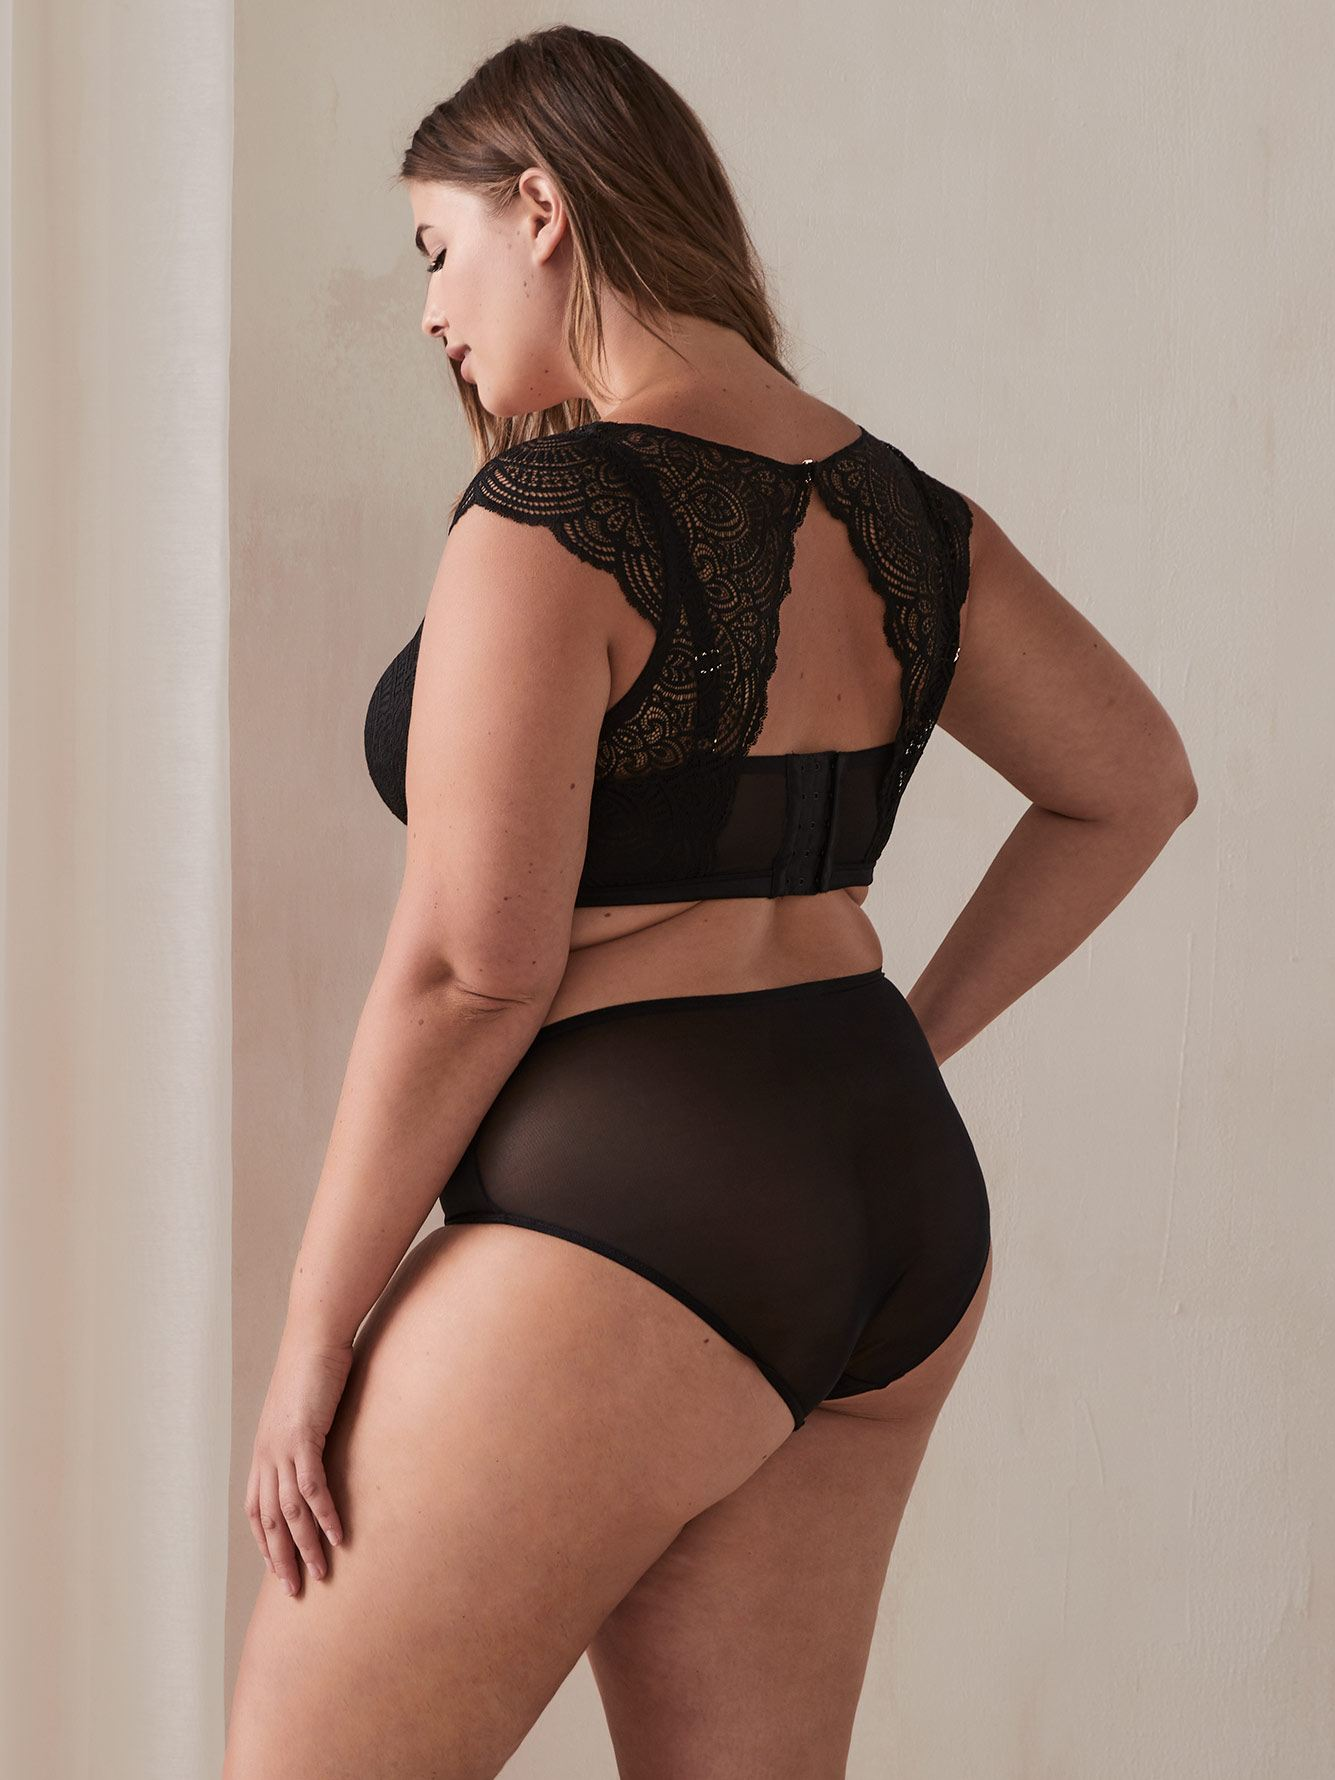 Ashley Graham - Soutien-gorge bustier Diva à demi bonnets